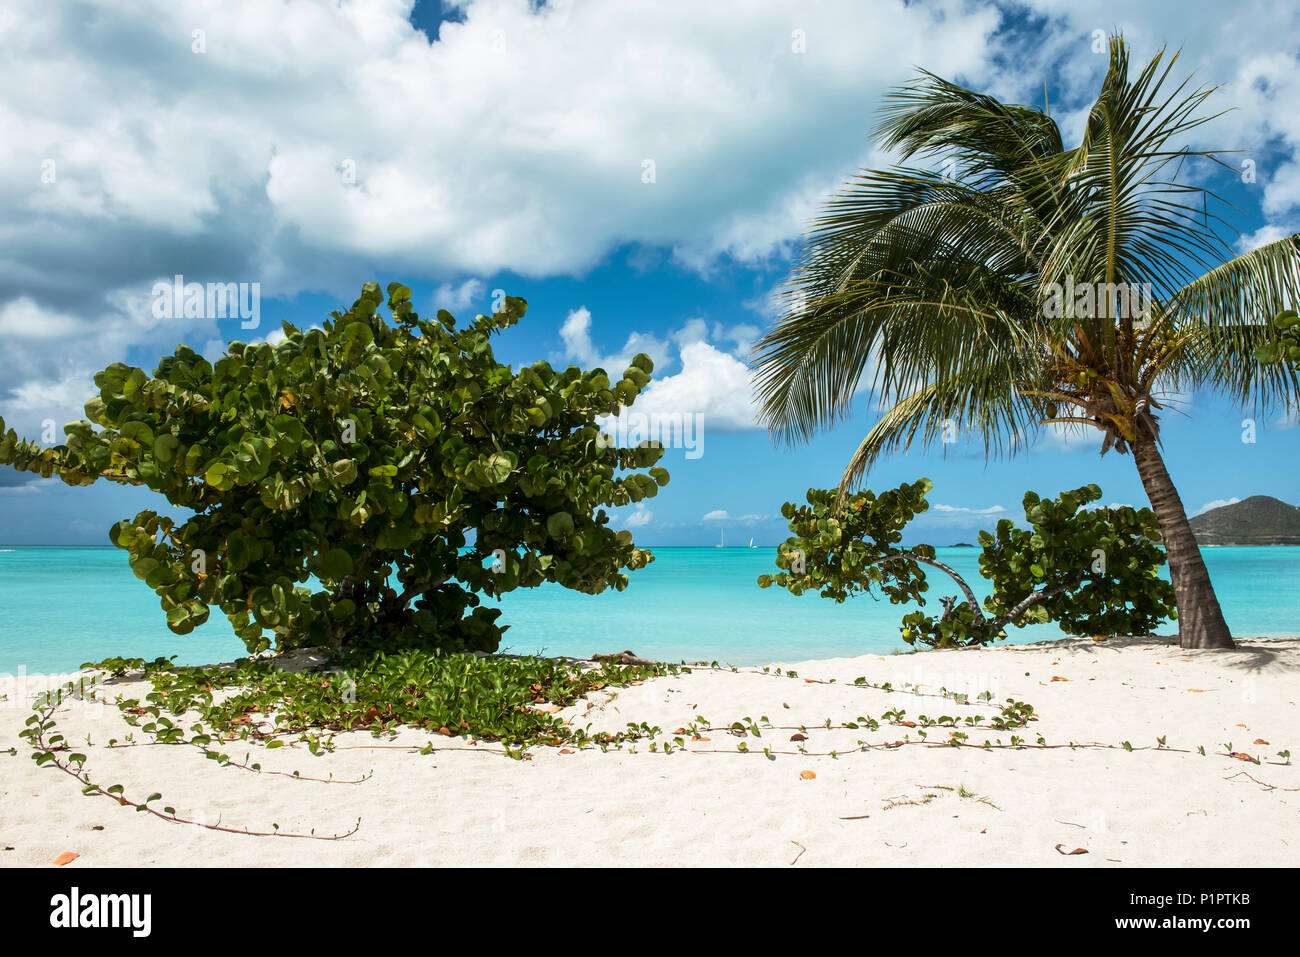 Tropical Jolly Harbour beach along the Caribbean Sea with white sand and trees; Antigua and Barbuda - Stock Image